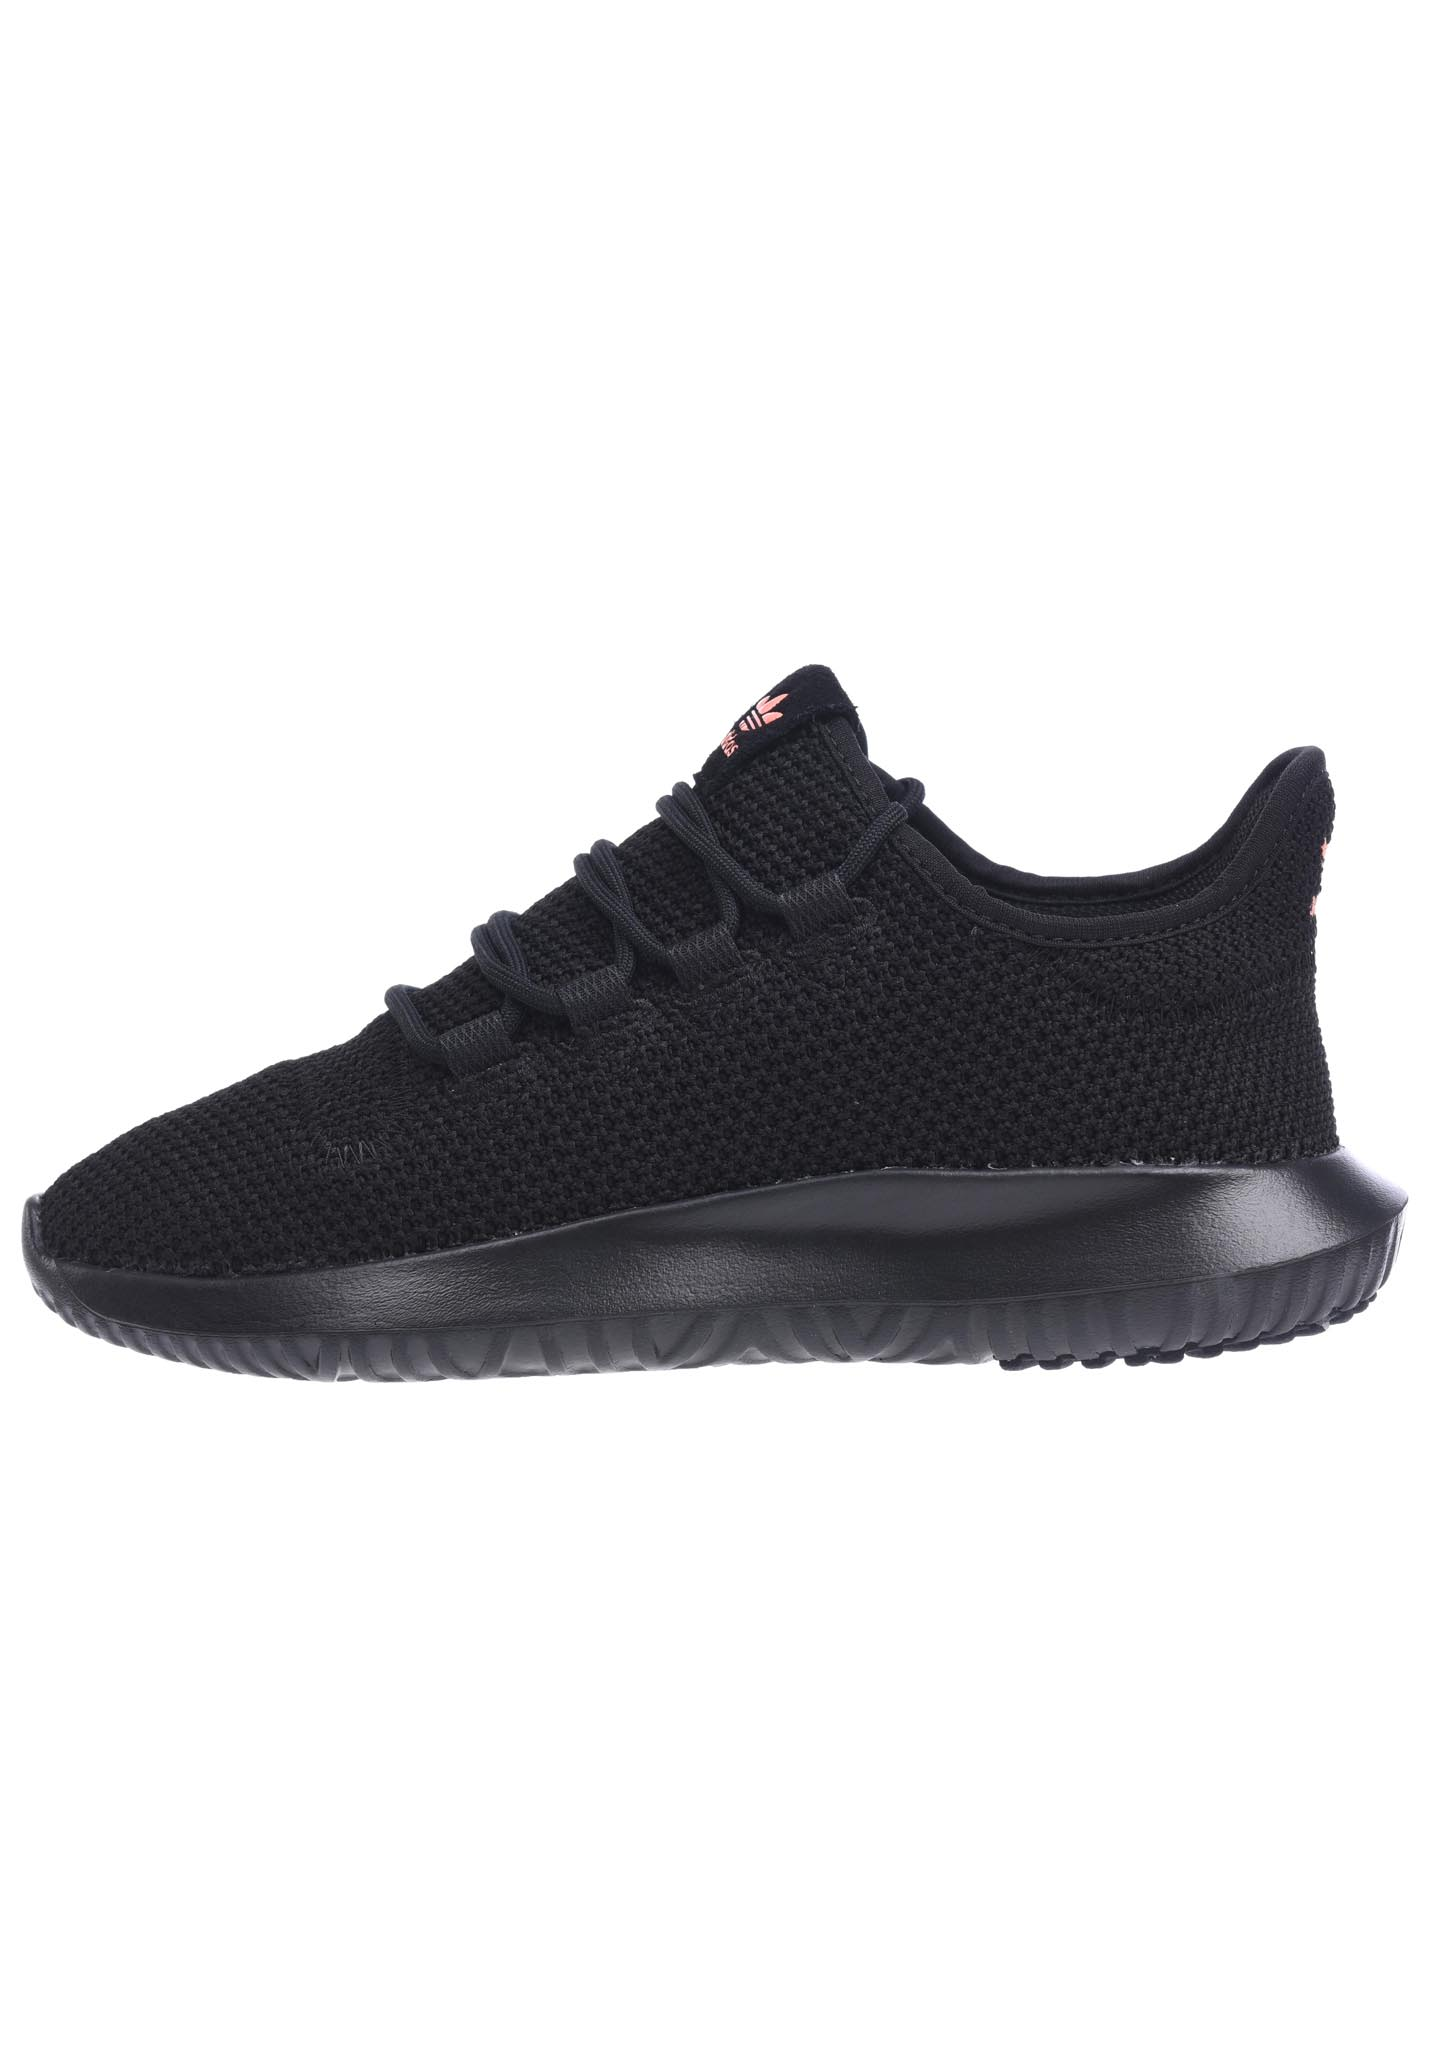 adidas Originals Tubular Shadow - Sneaker für Damen - Schwarz